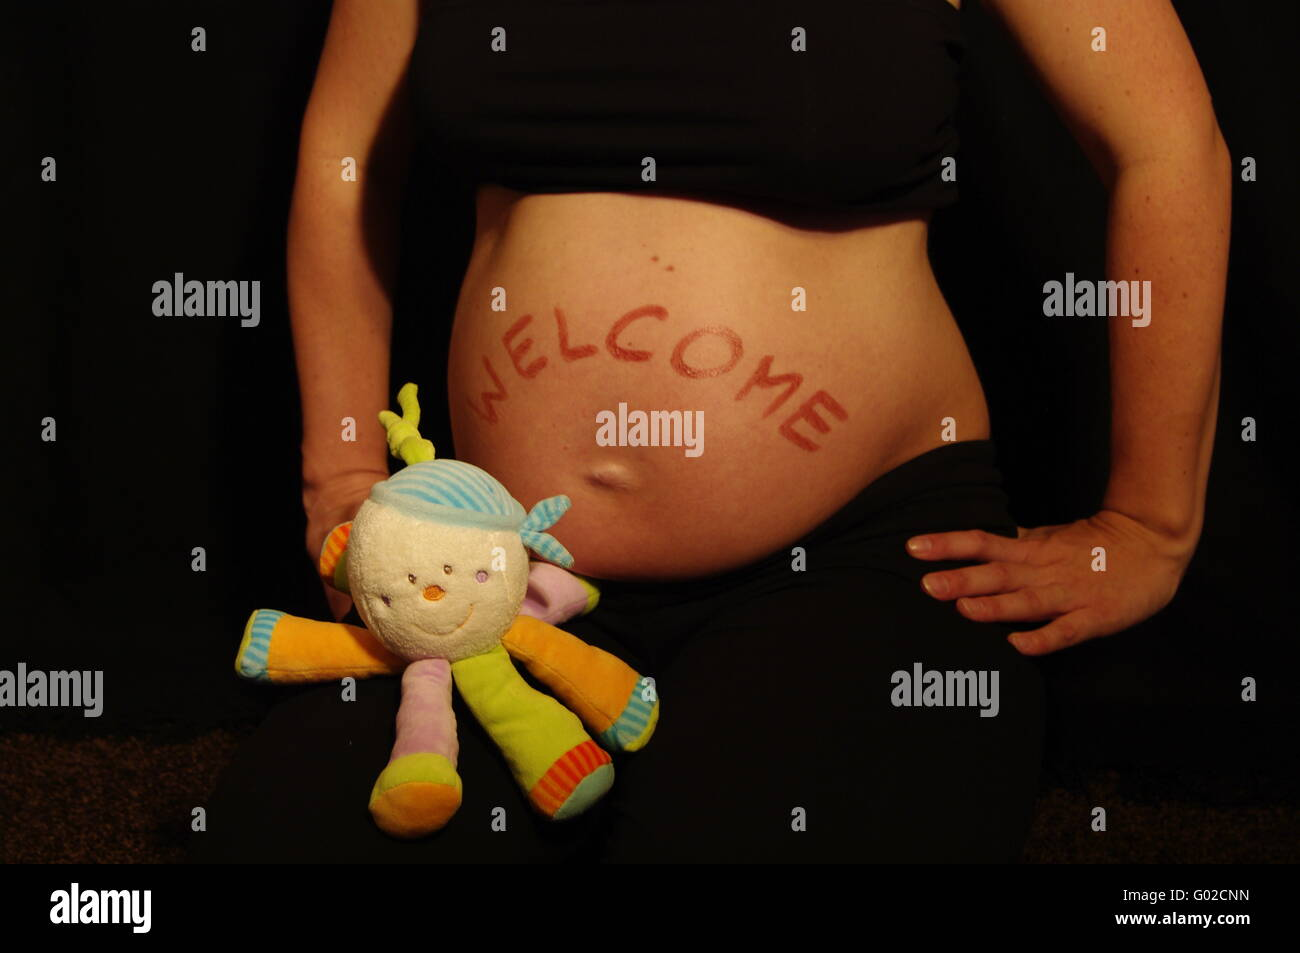 Baby Belly Not Pregnant Stock Photos Baby Belly Not